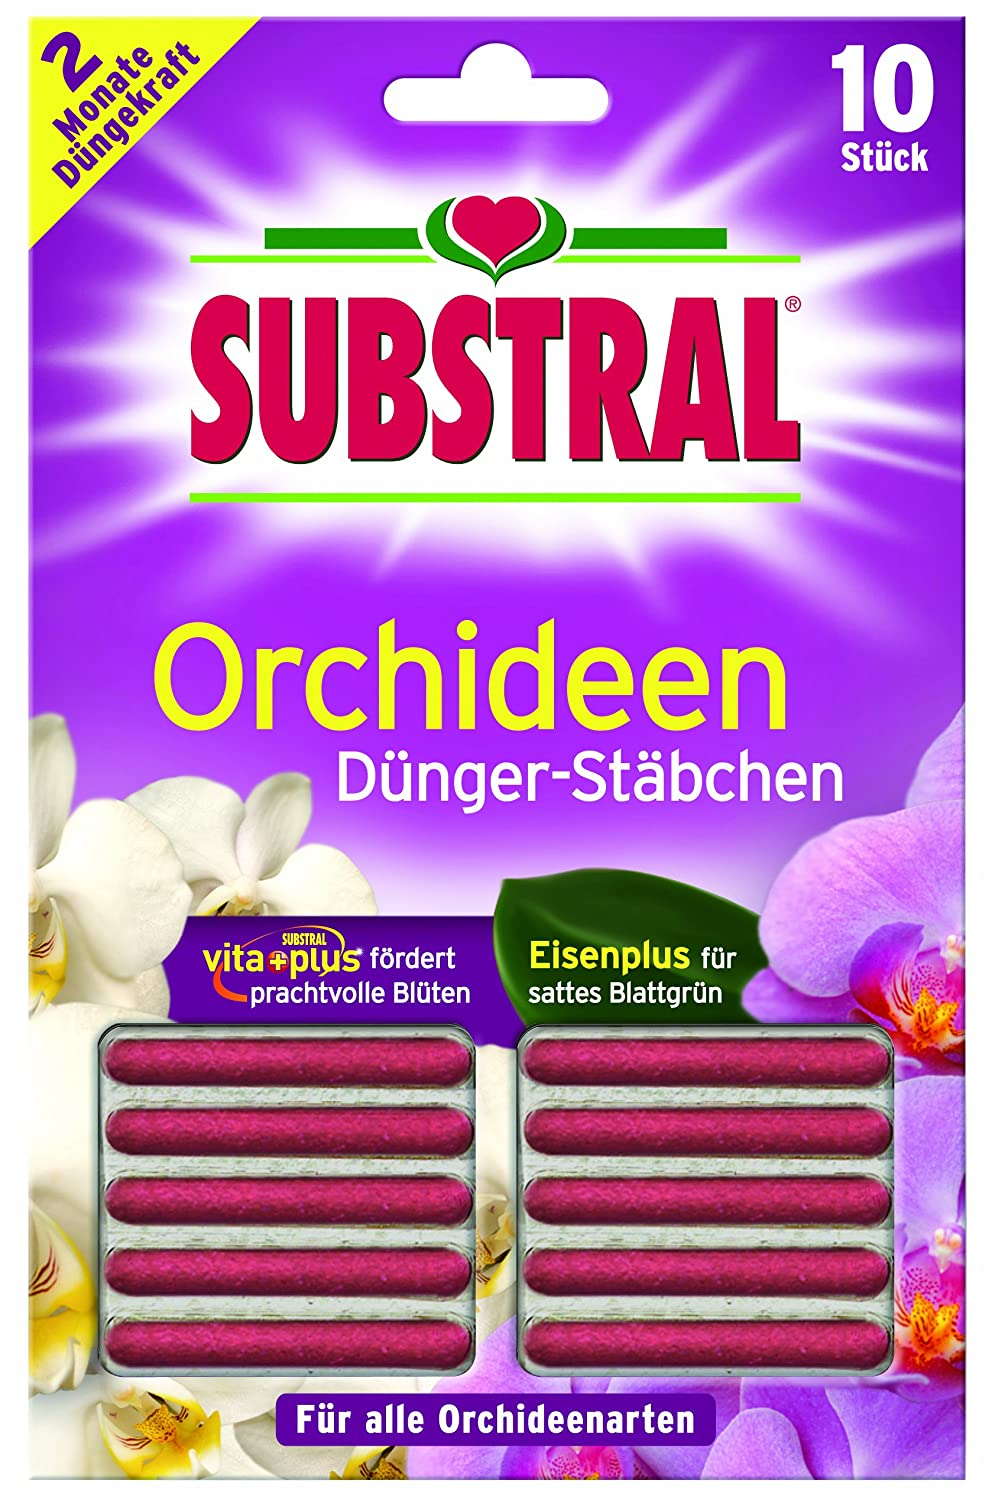 Substral Orchid DüngerStäBchen-Pack of 10. 8910498